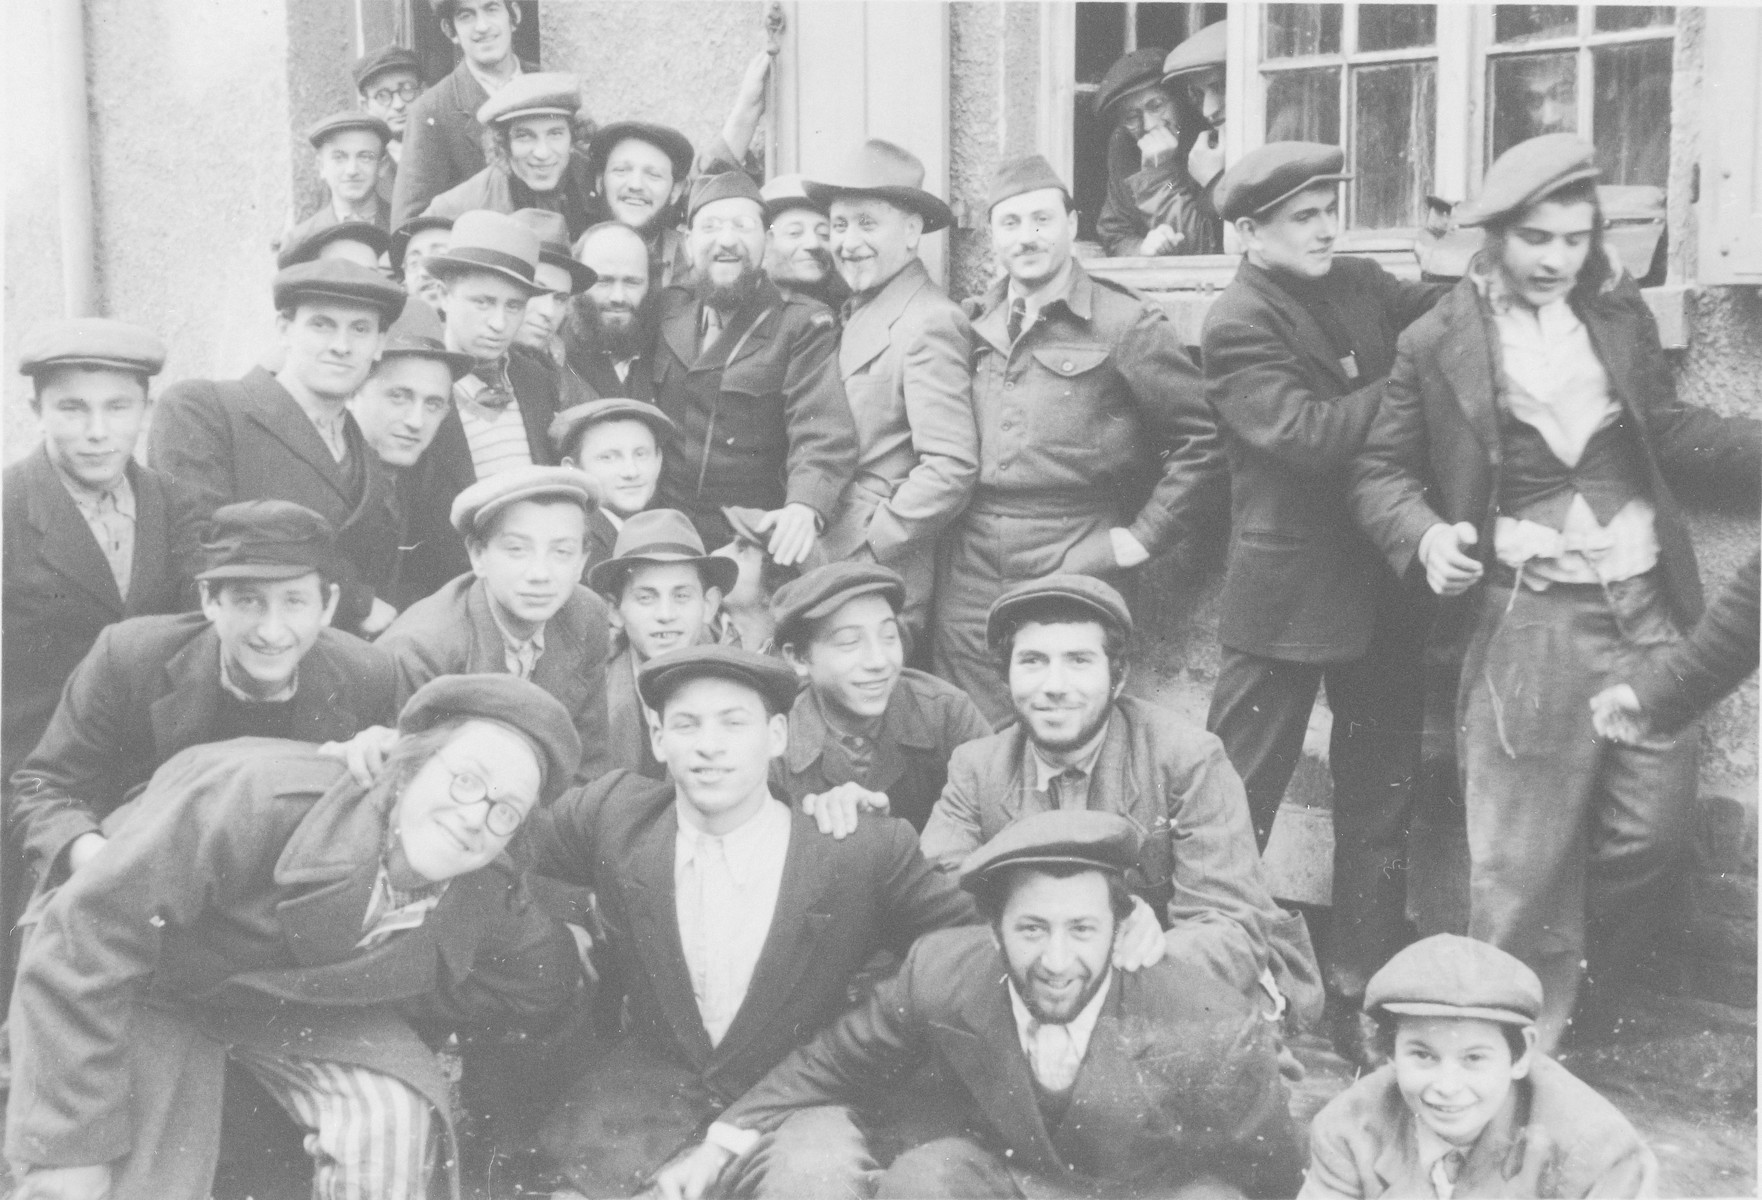 Group portrait of students in the Yeshiva Beth Joseph in the Zeilsheim displaced persons' camp.